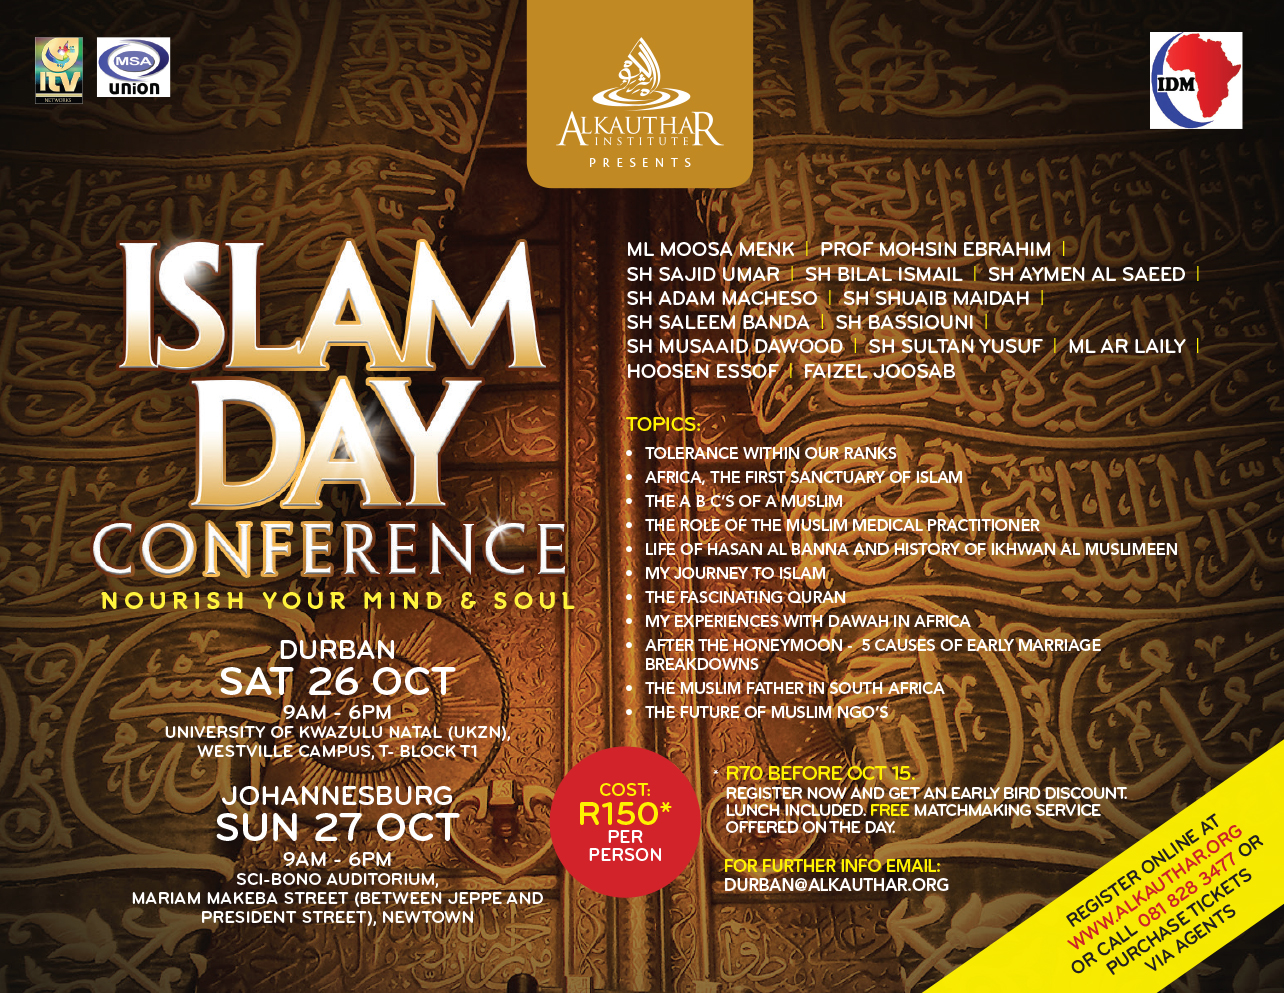 Islam Day Conference 2013